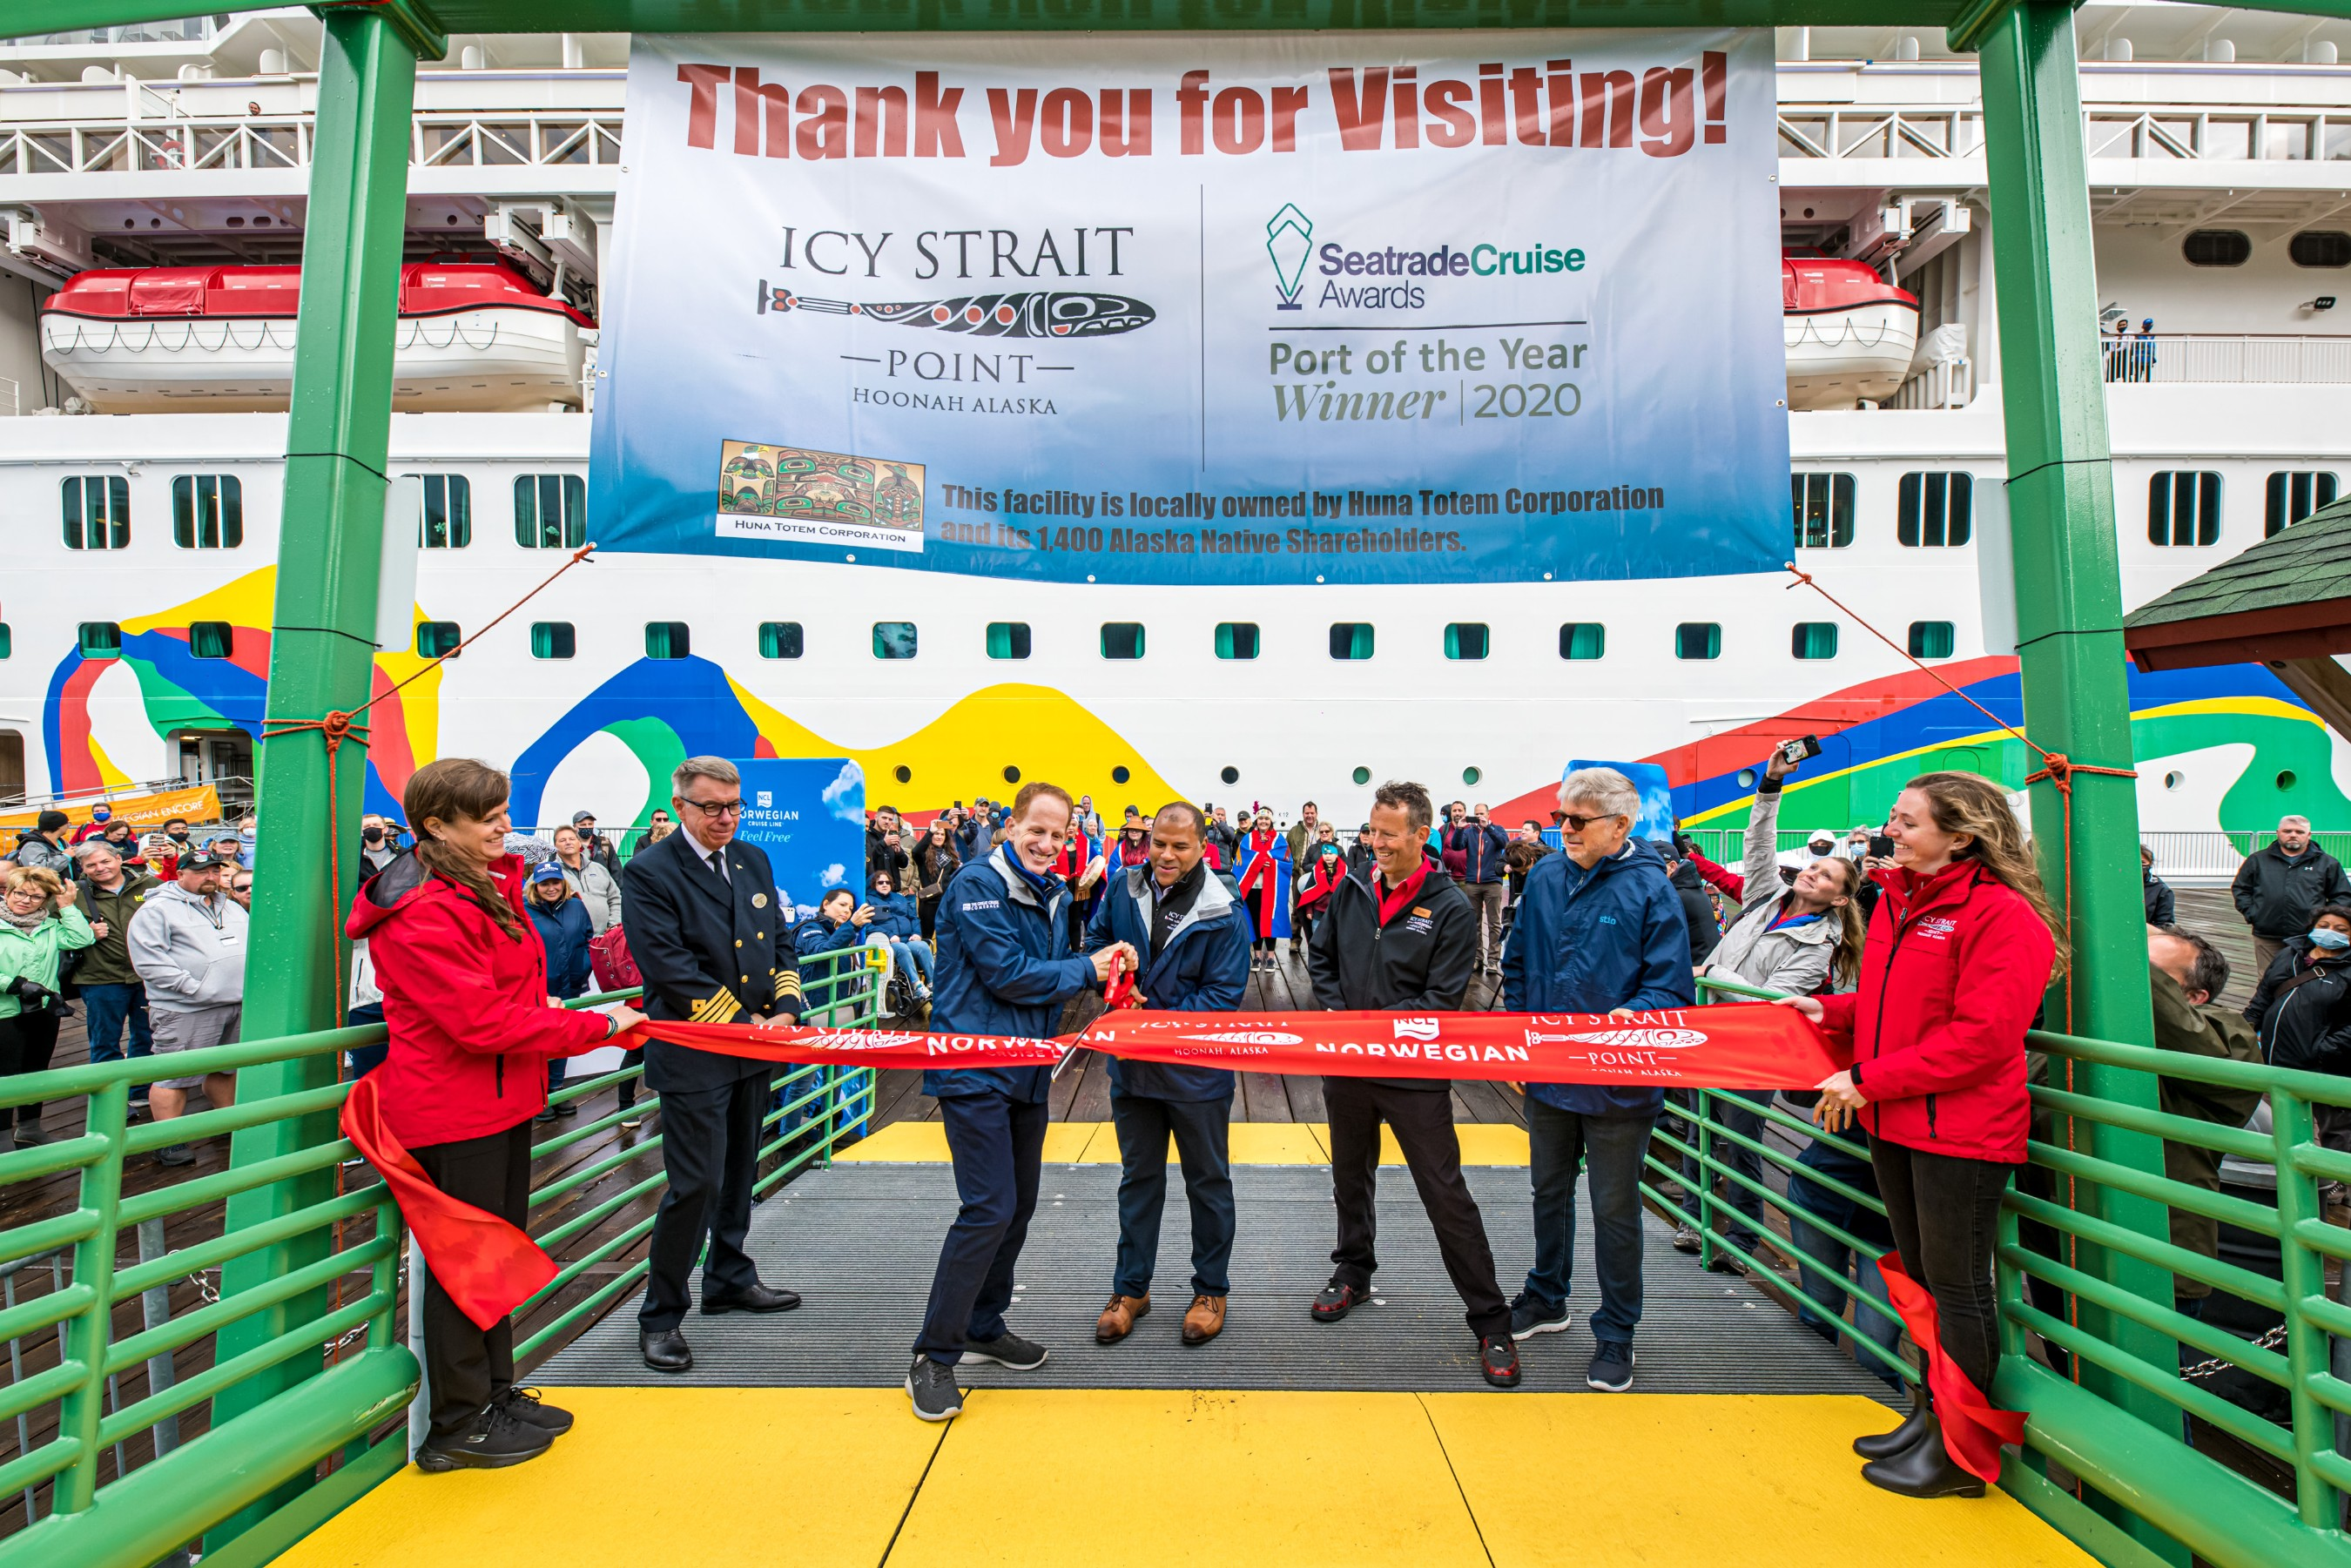 A ribbon cutting ceremony was held on Aug. 10, 2021 in Icy Strait Point, Alaska to celebrate the opening of the new Wilderness Landing pier built in partnership with Norwegian Cruise Line Holdings Ltd. and Huna Totem Corporation. NCL President and CEO Harry Sommer and Huna Totem Corporation CEO Russell Dick ceremoniously cut the ribbon and open the new pier. Photos by Alive Coverage.